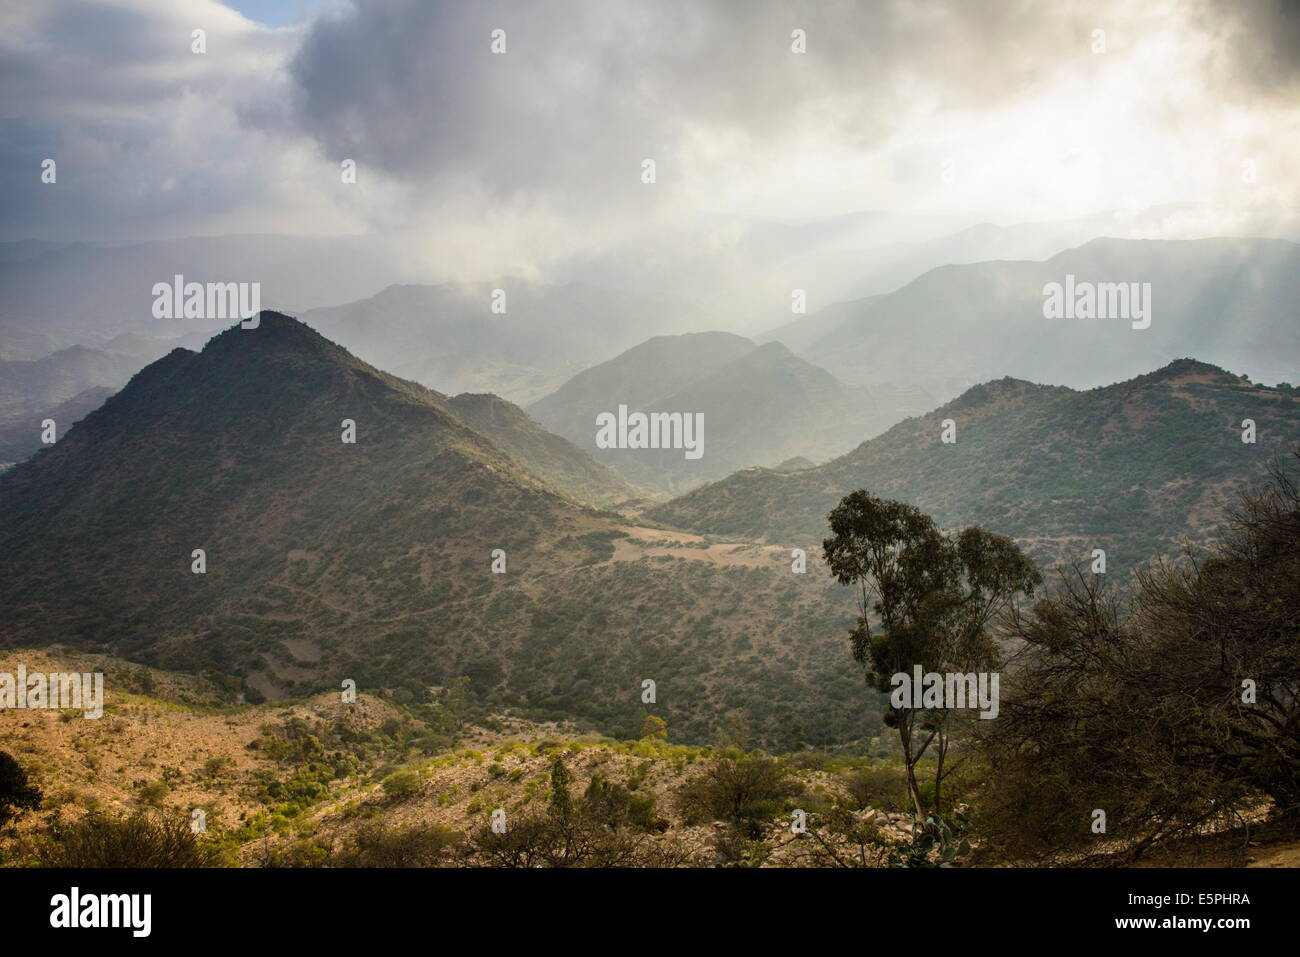 Outlook over the mountains along the road from Massawa to Asmara, Eritrea, Africa - Stock Image